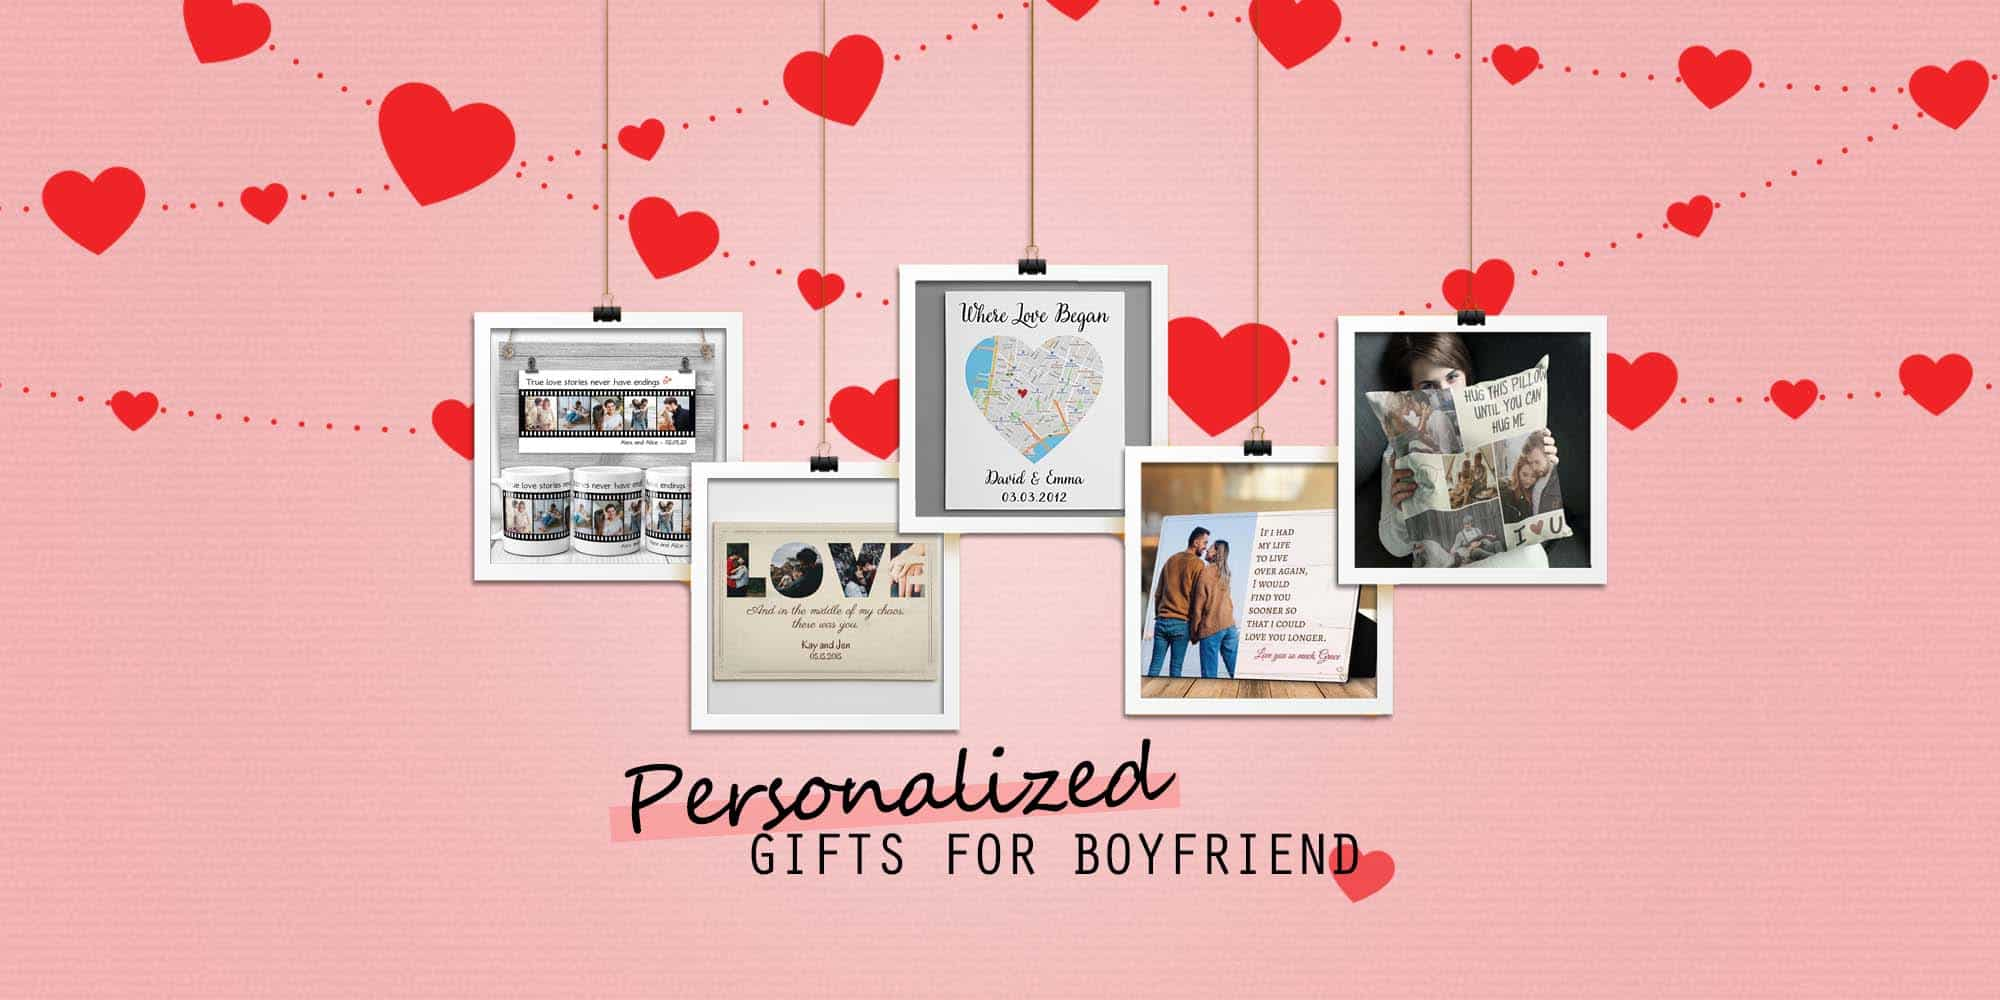 31 Personalized Gifts for Your Boyfriend to Make Him Feel Special (2021)